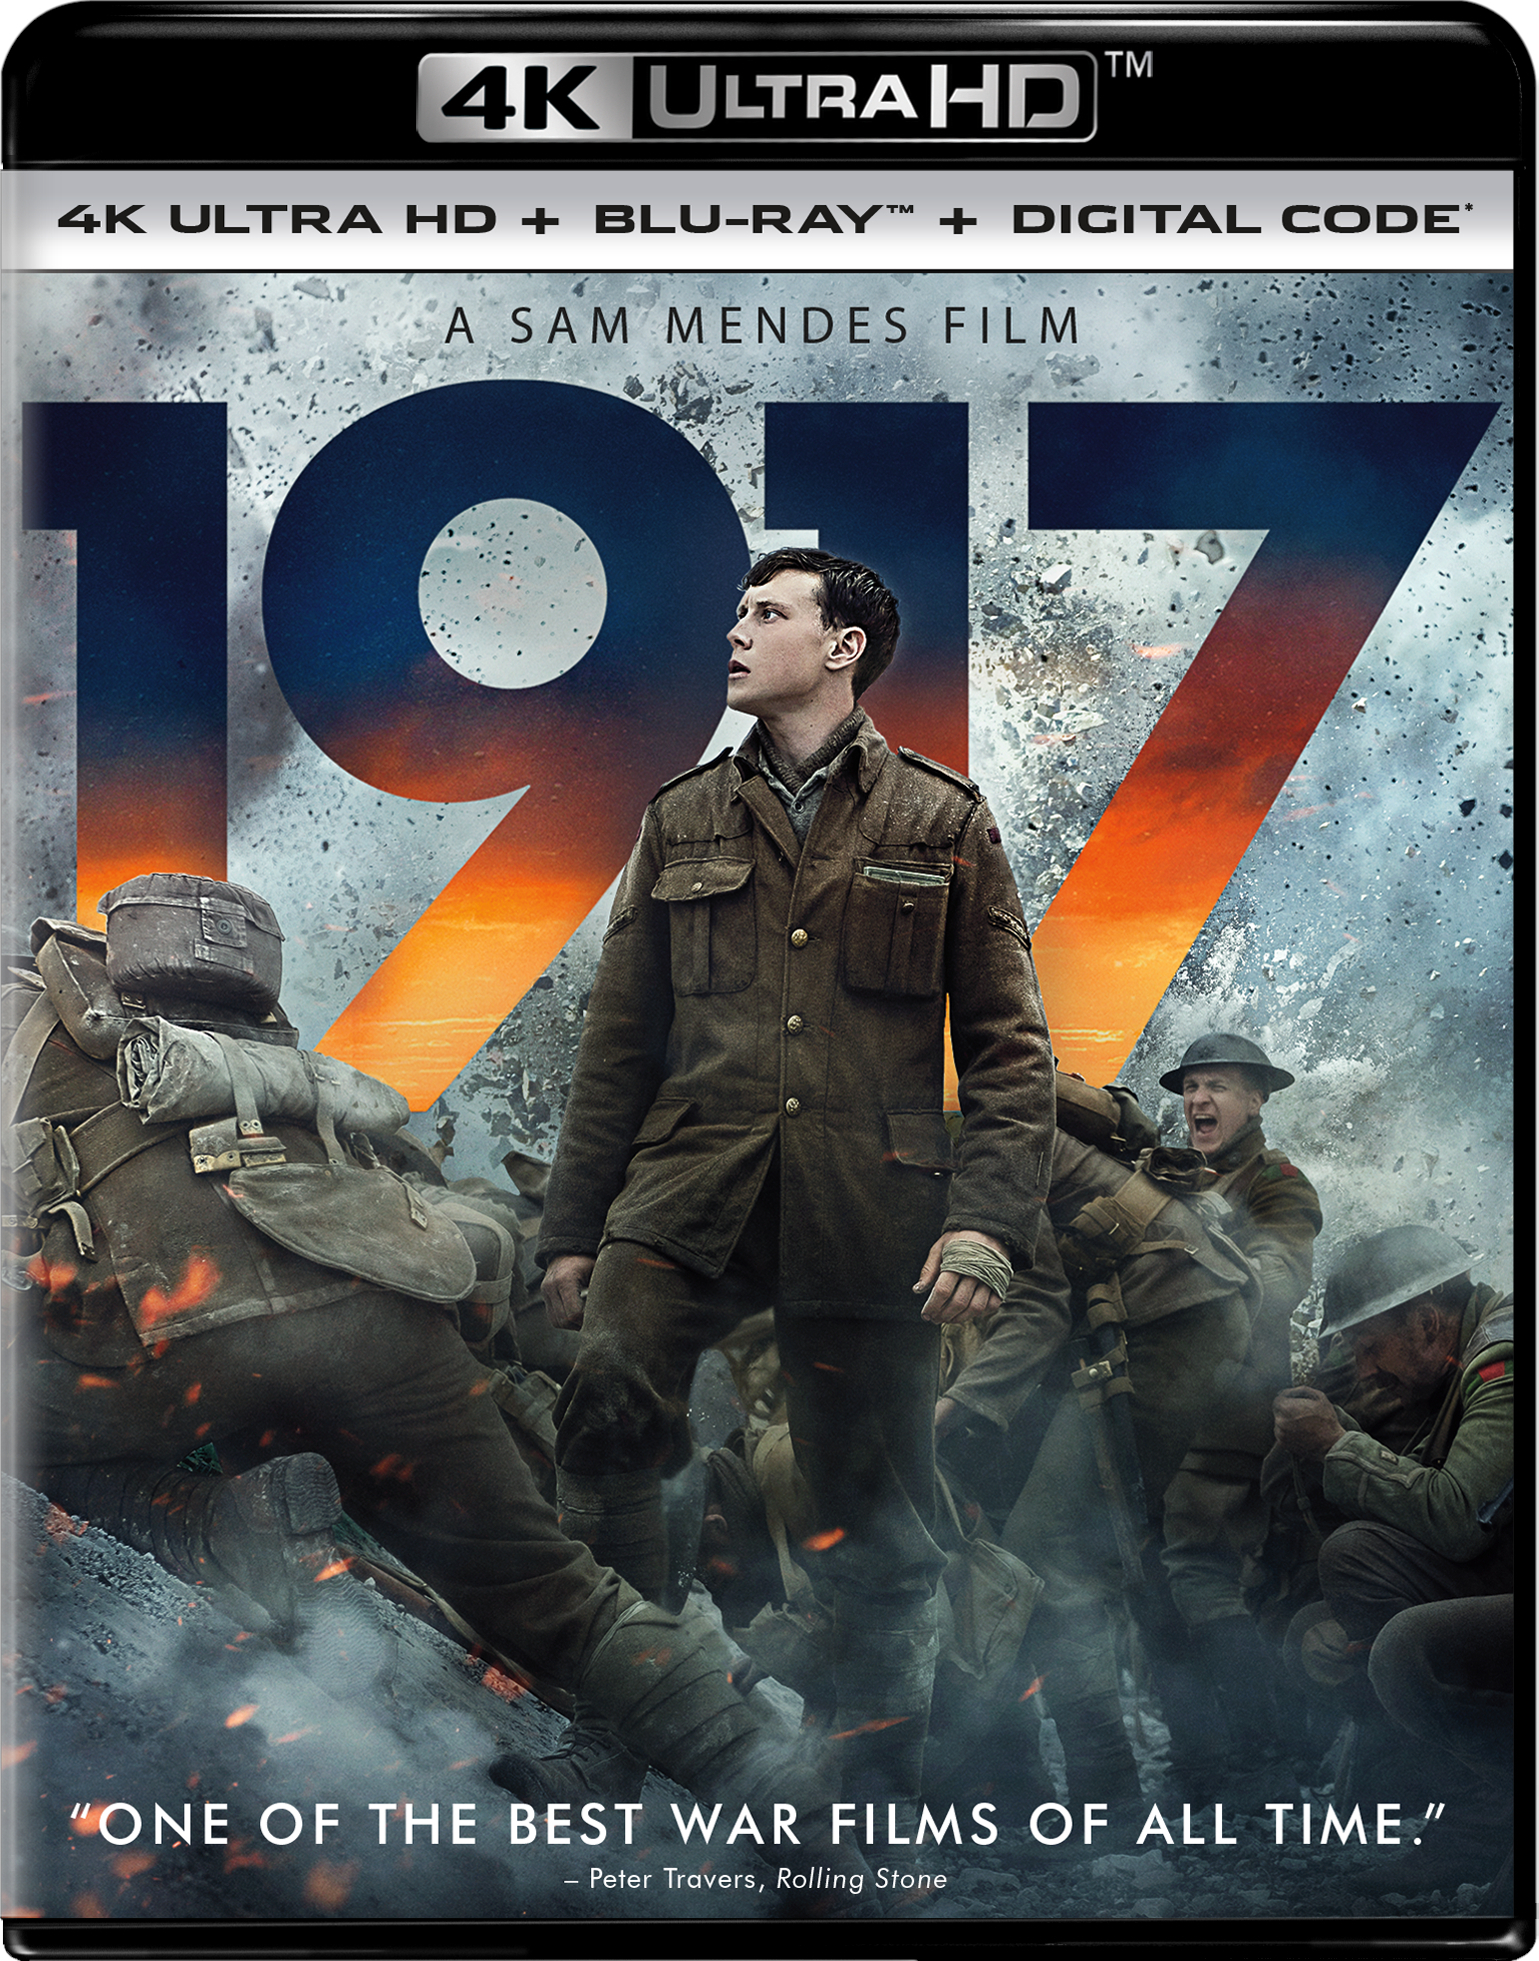 1917 (2019) 4K ULTRA HD UNTOUCHED BD100 [ISO]